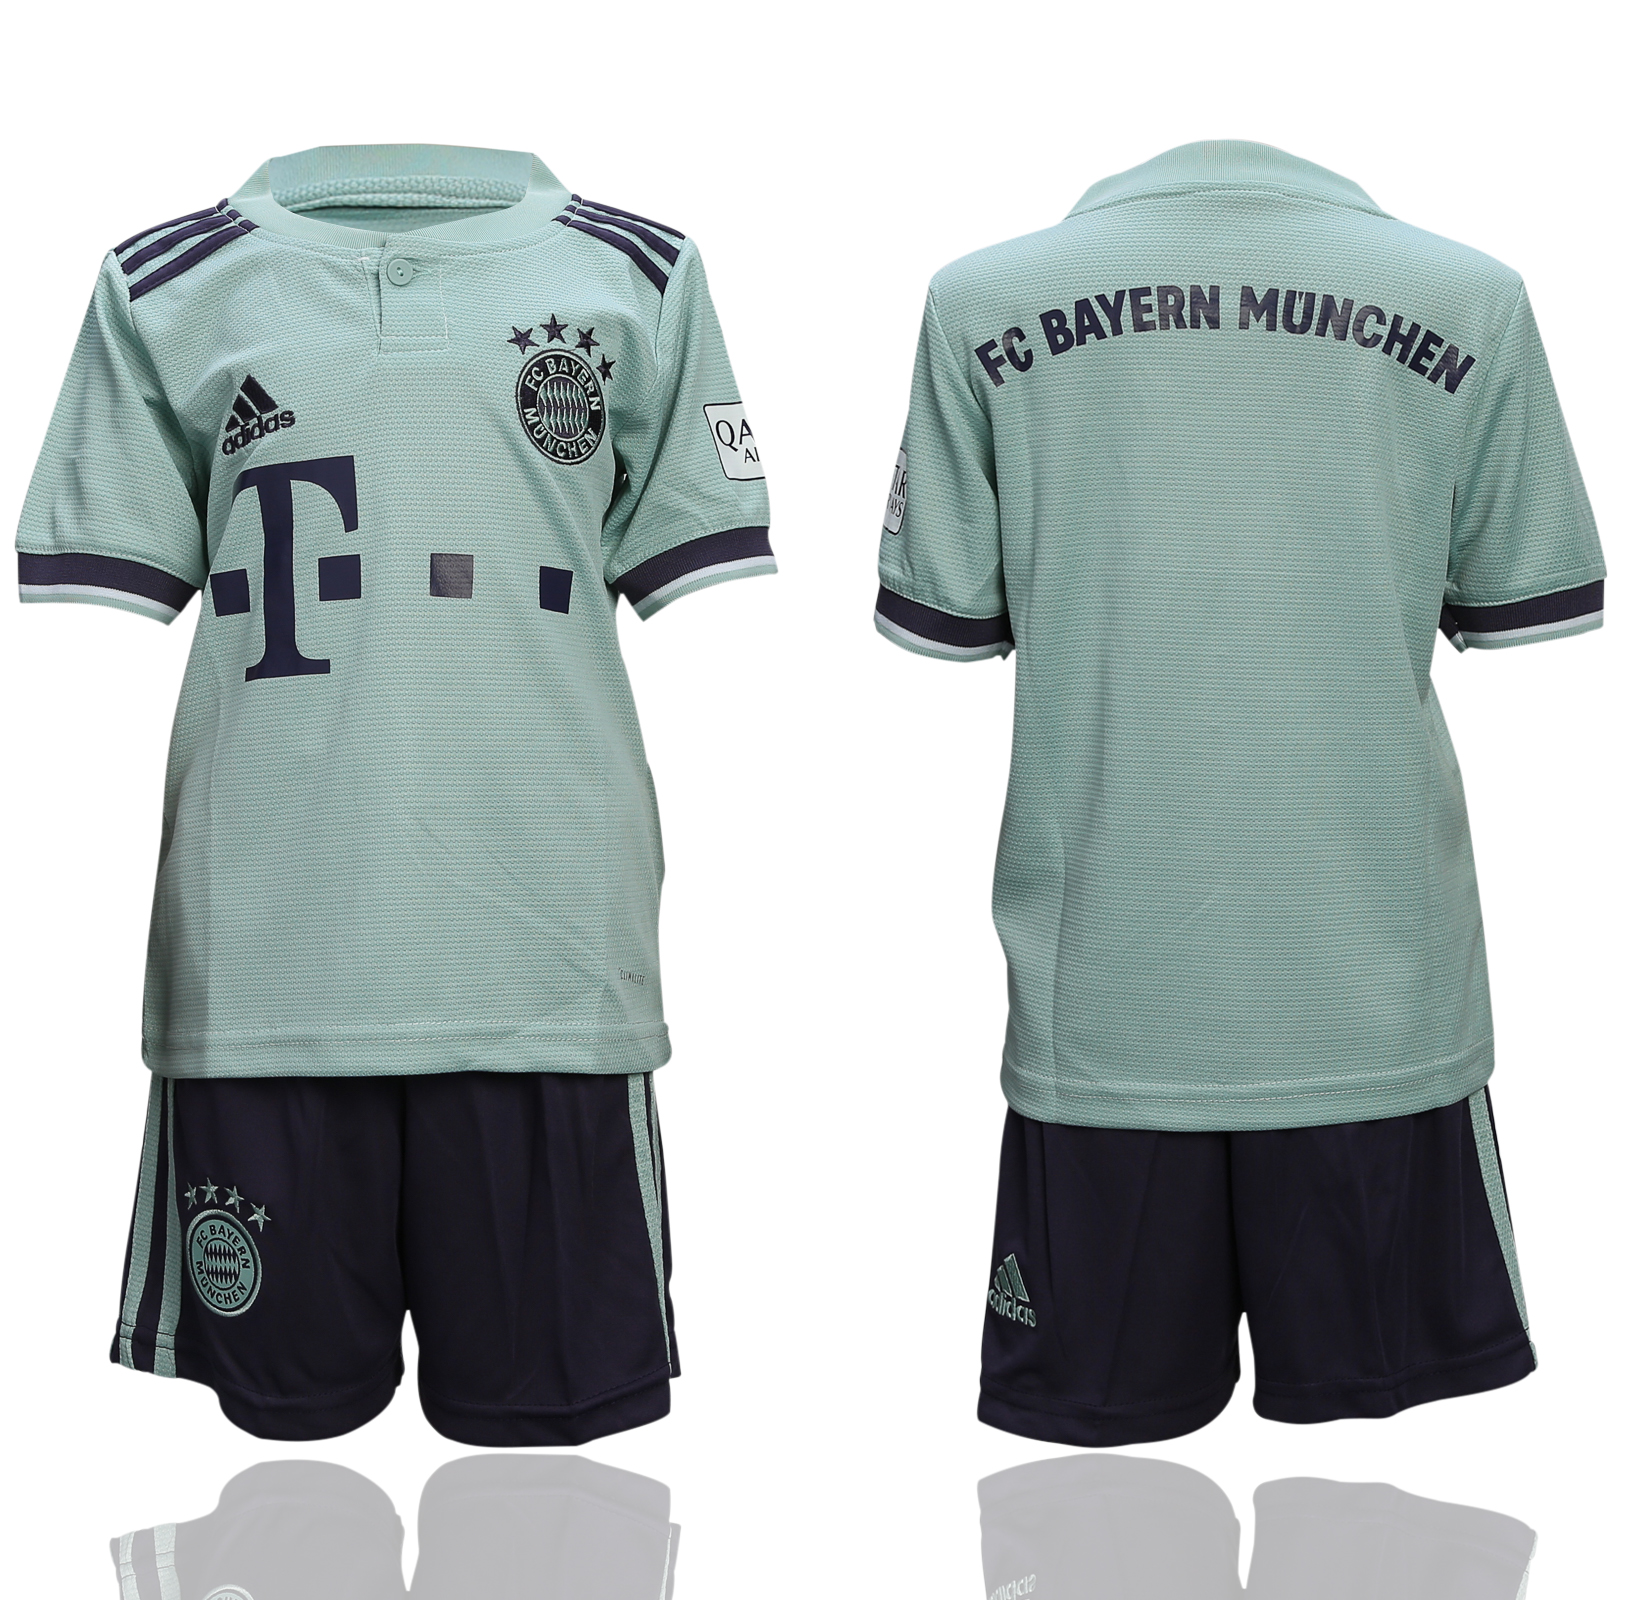 2018-19 Bayern Munich Away Youth Soccer Jersey